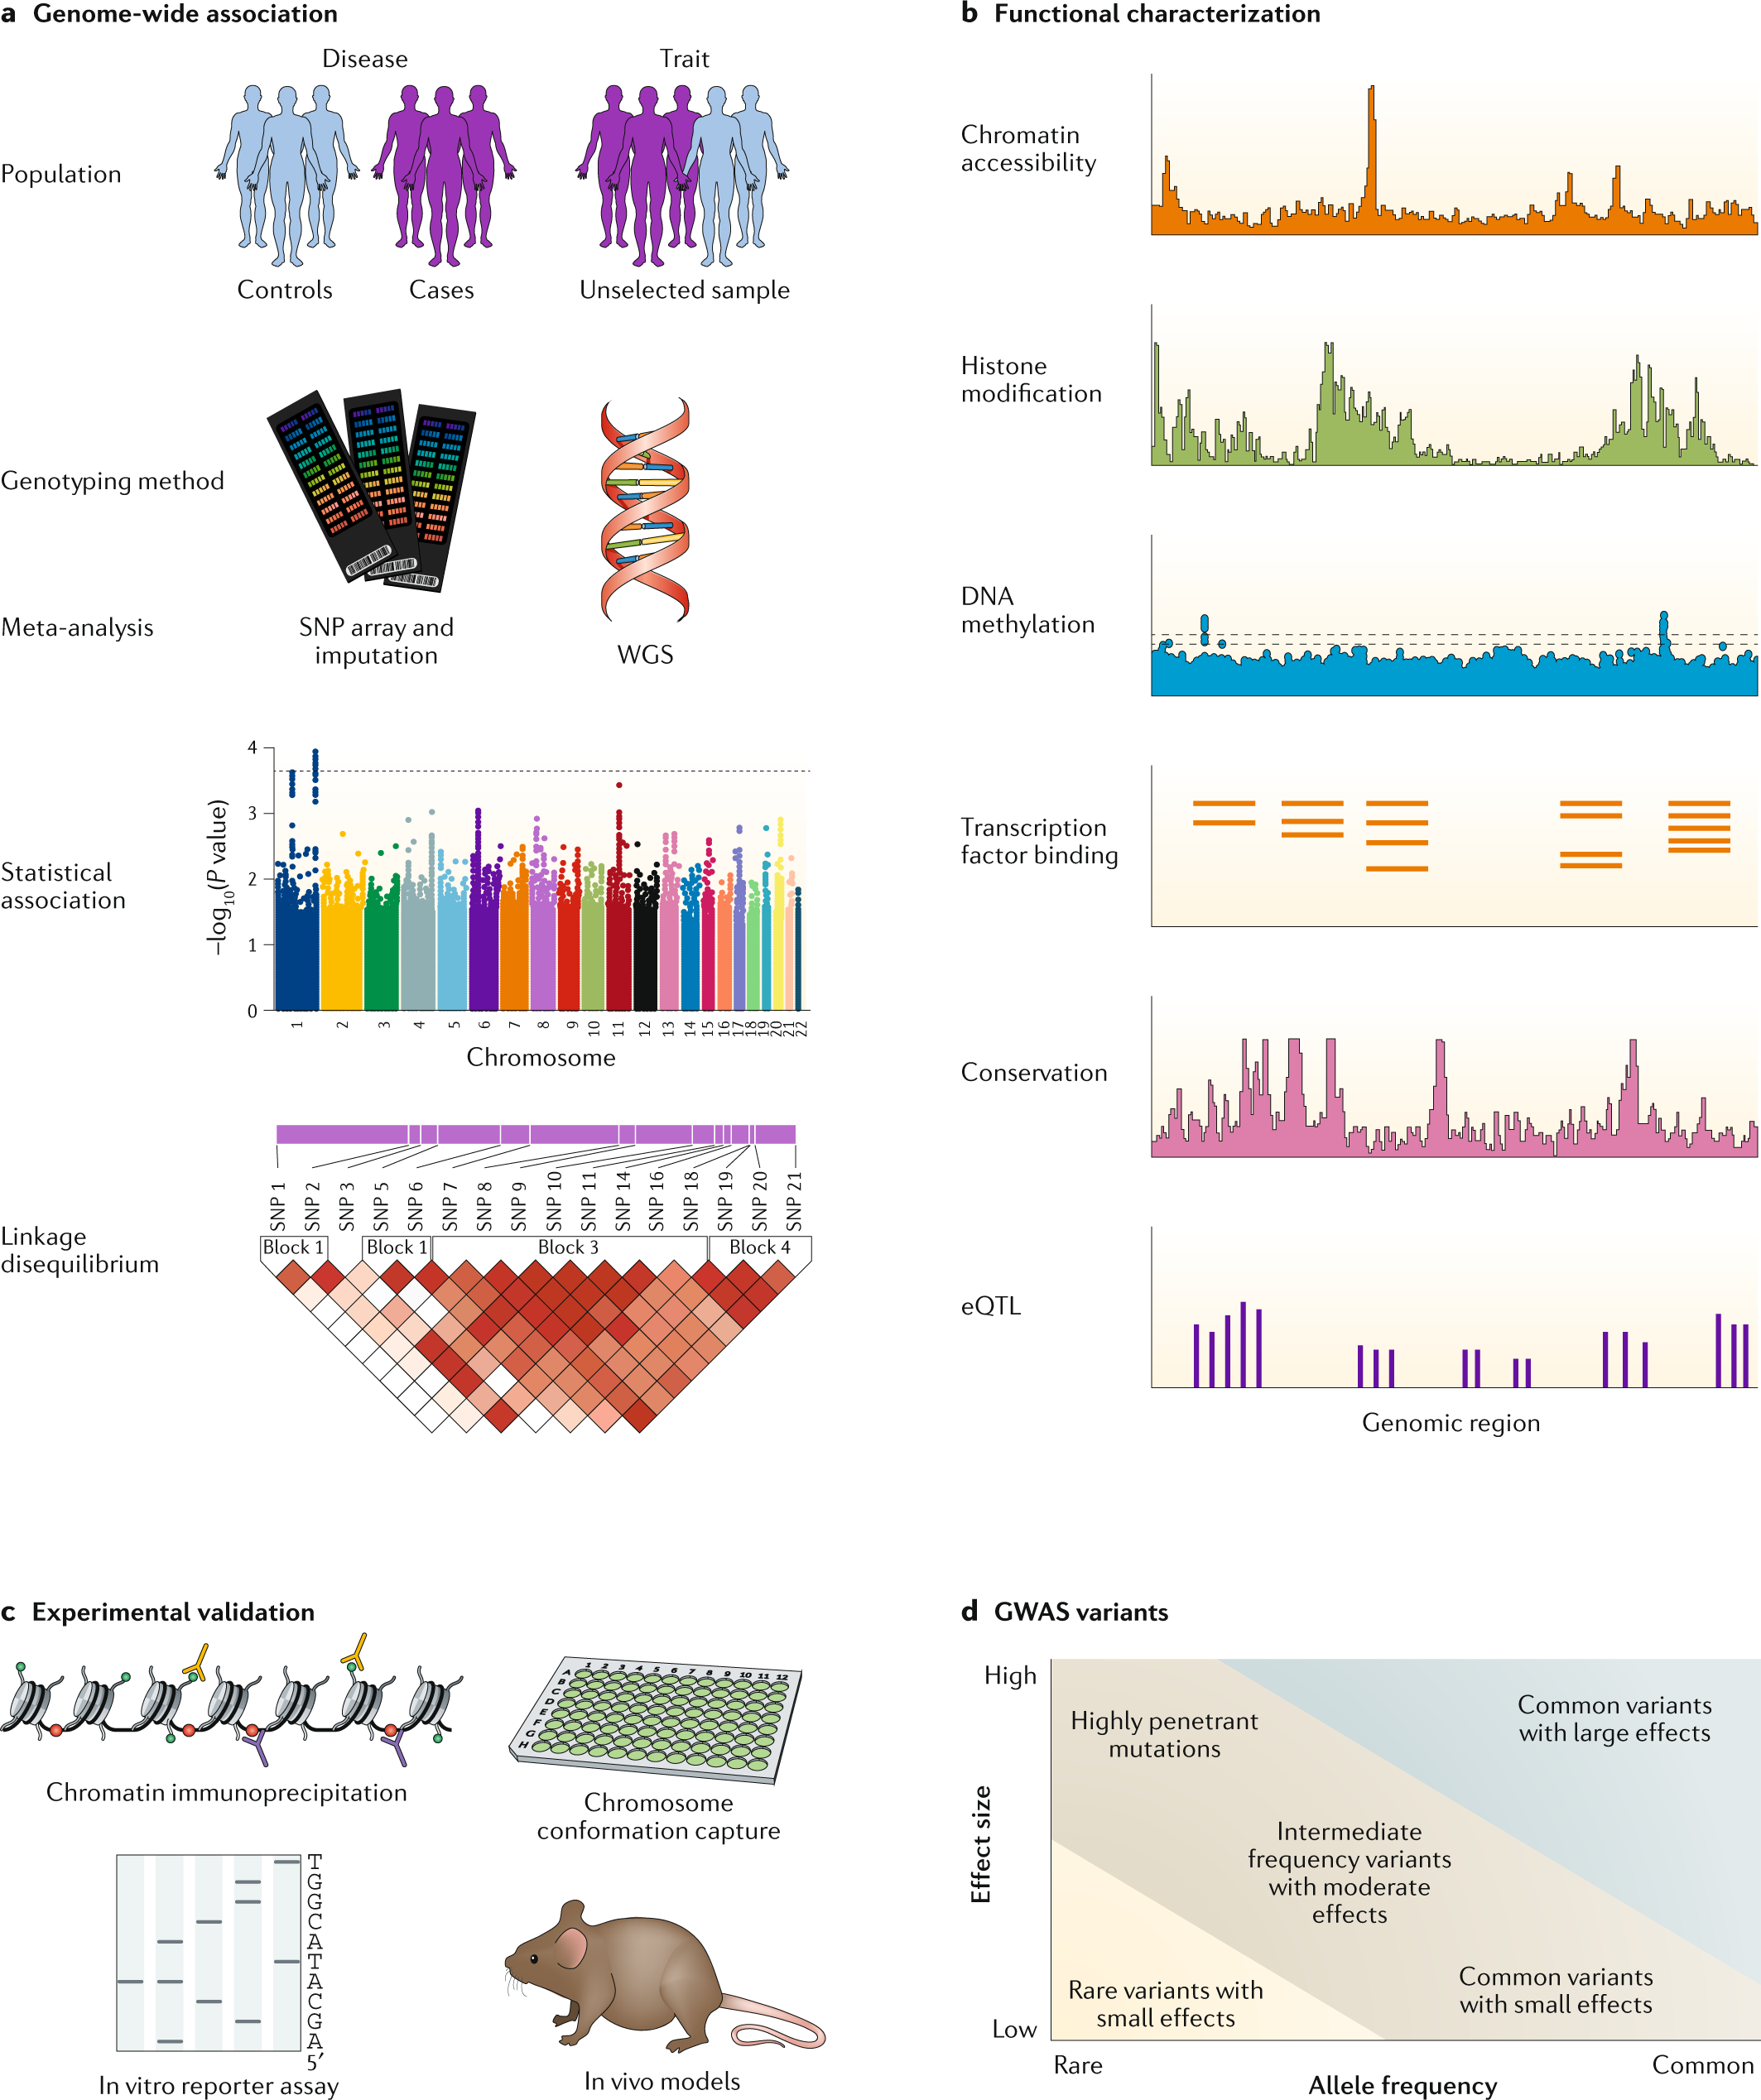 Benefits and limitations of genome-wide association studies